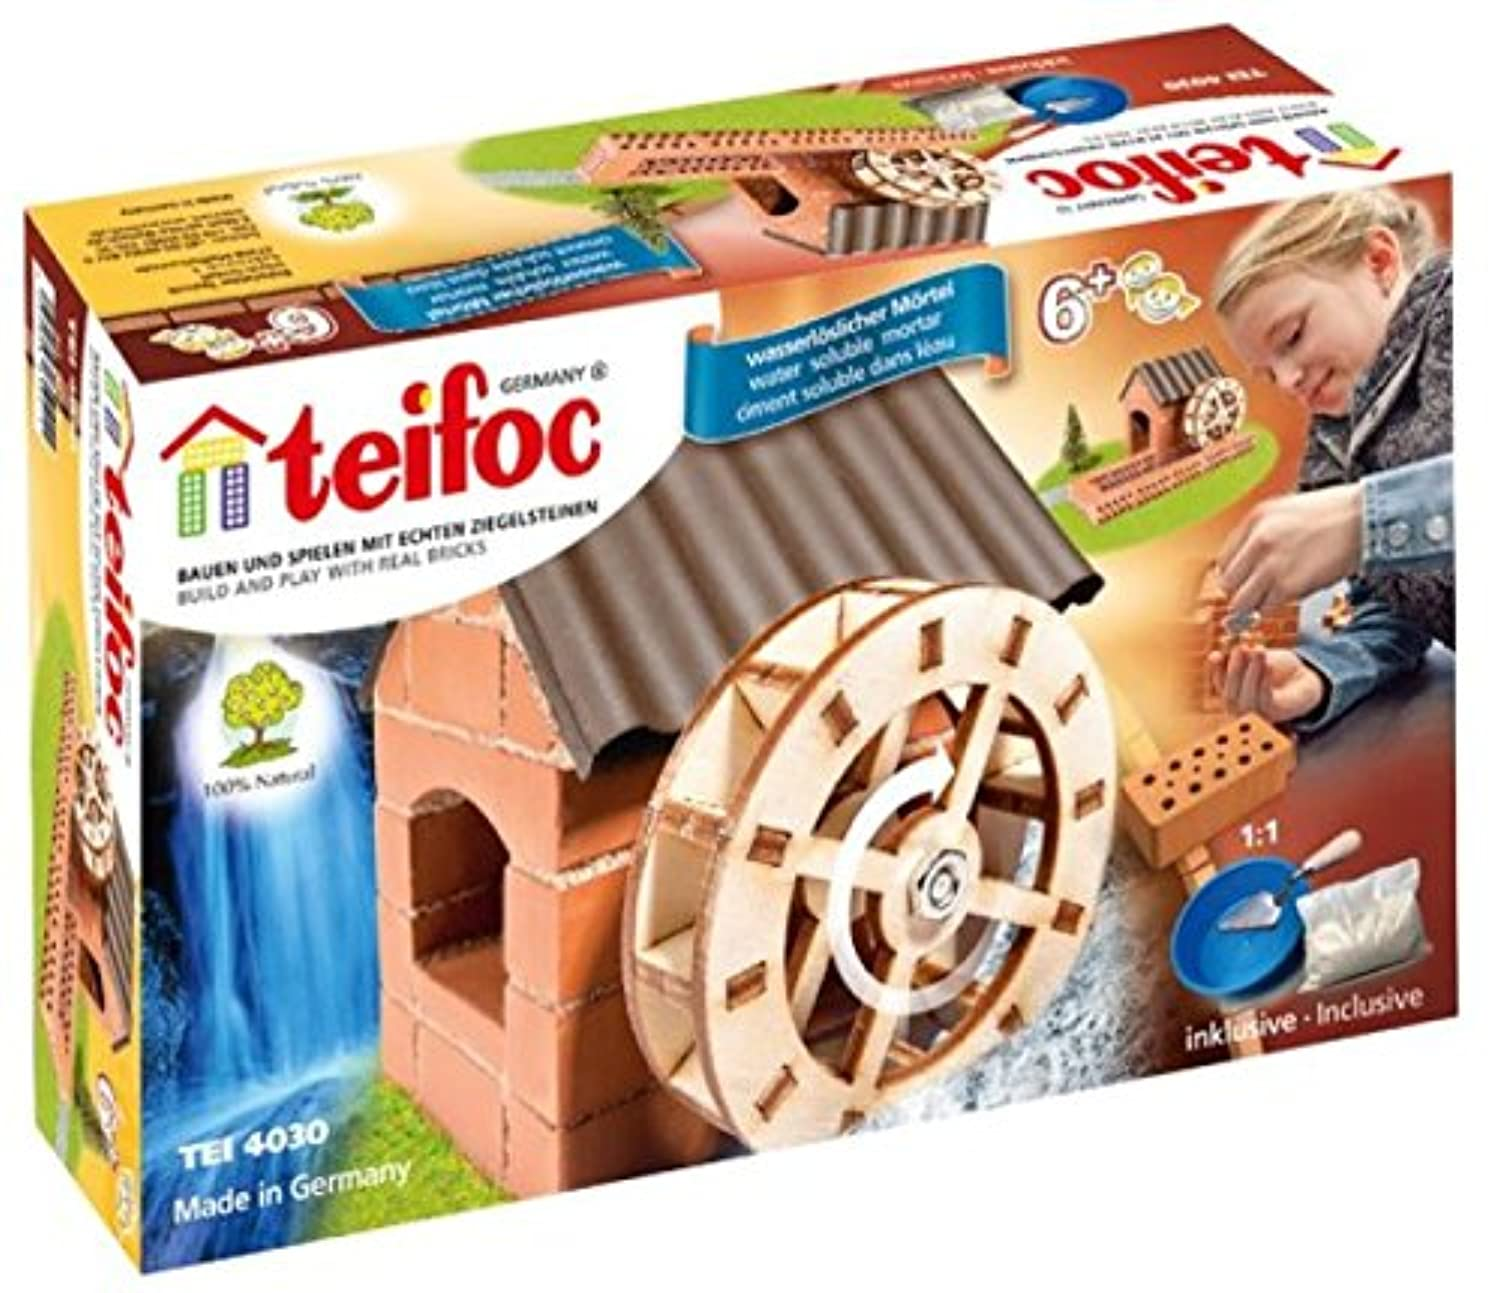 Teifoc 4030 - Watermill - Build with real Bricks & Cement [並行輸入品]